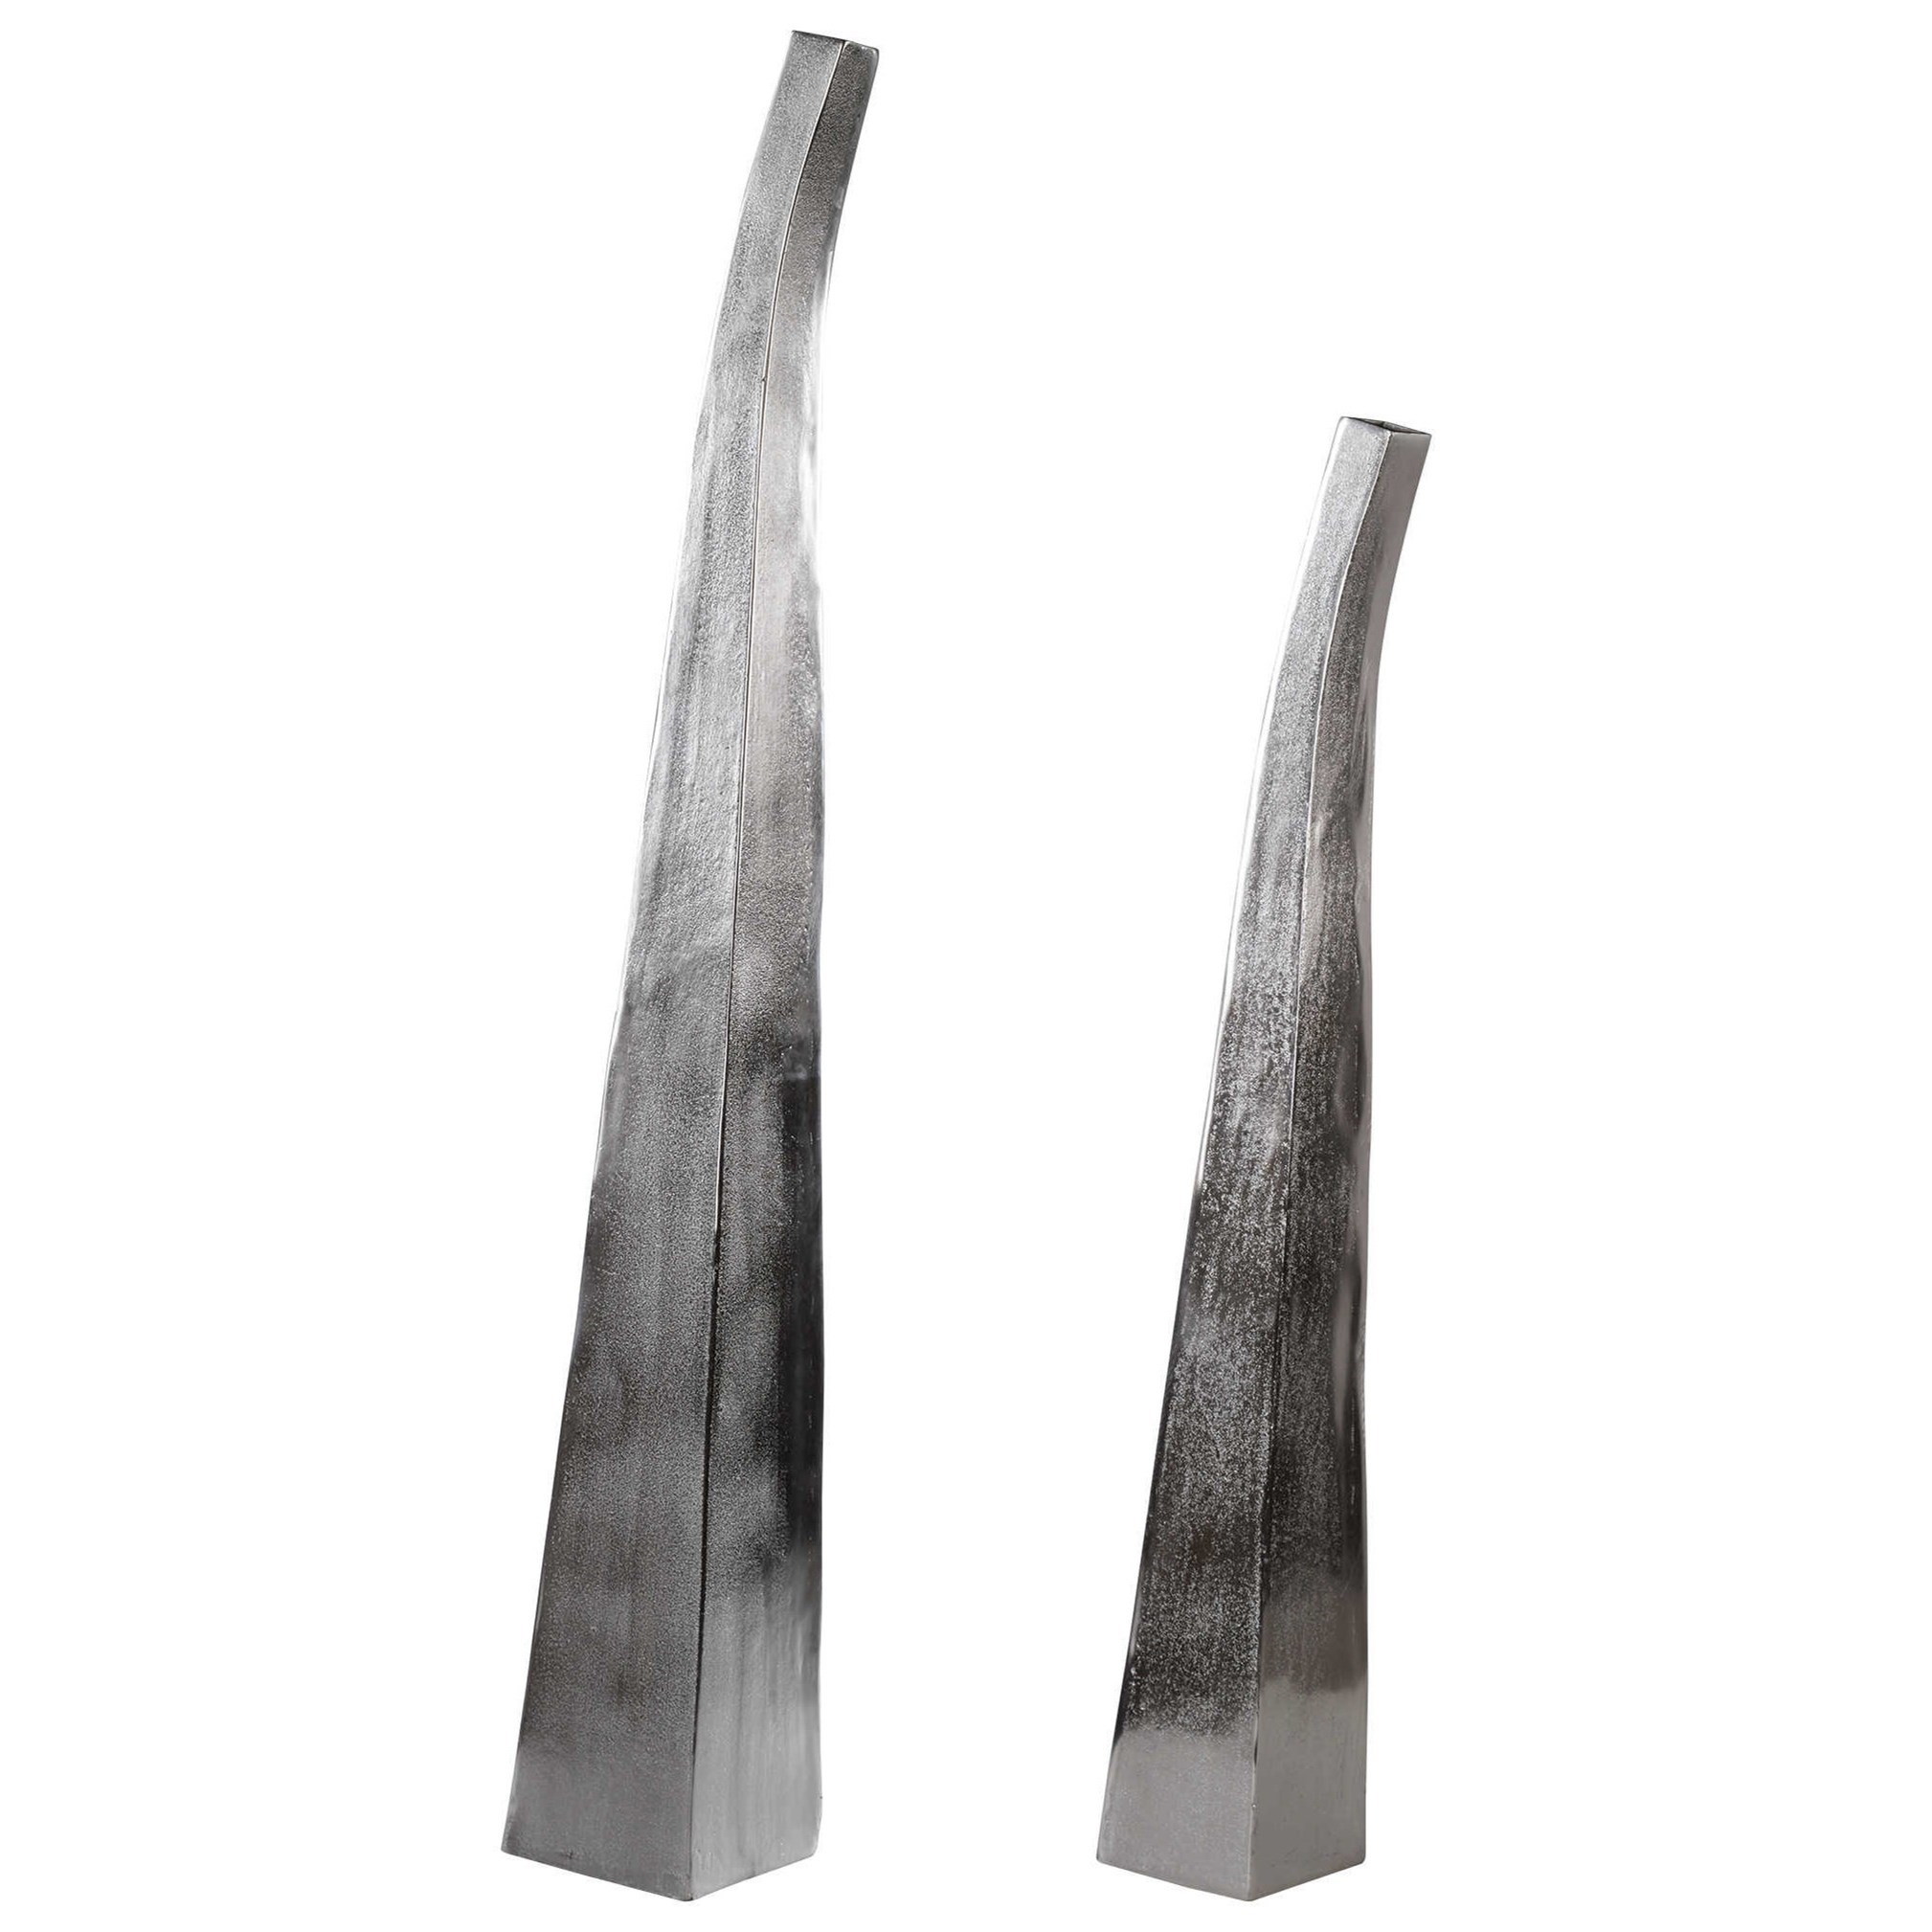 Accessories - Vases and Urns Matte Nickel Vases Set of 2 by Uttermost at Suburban Furniture